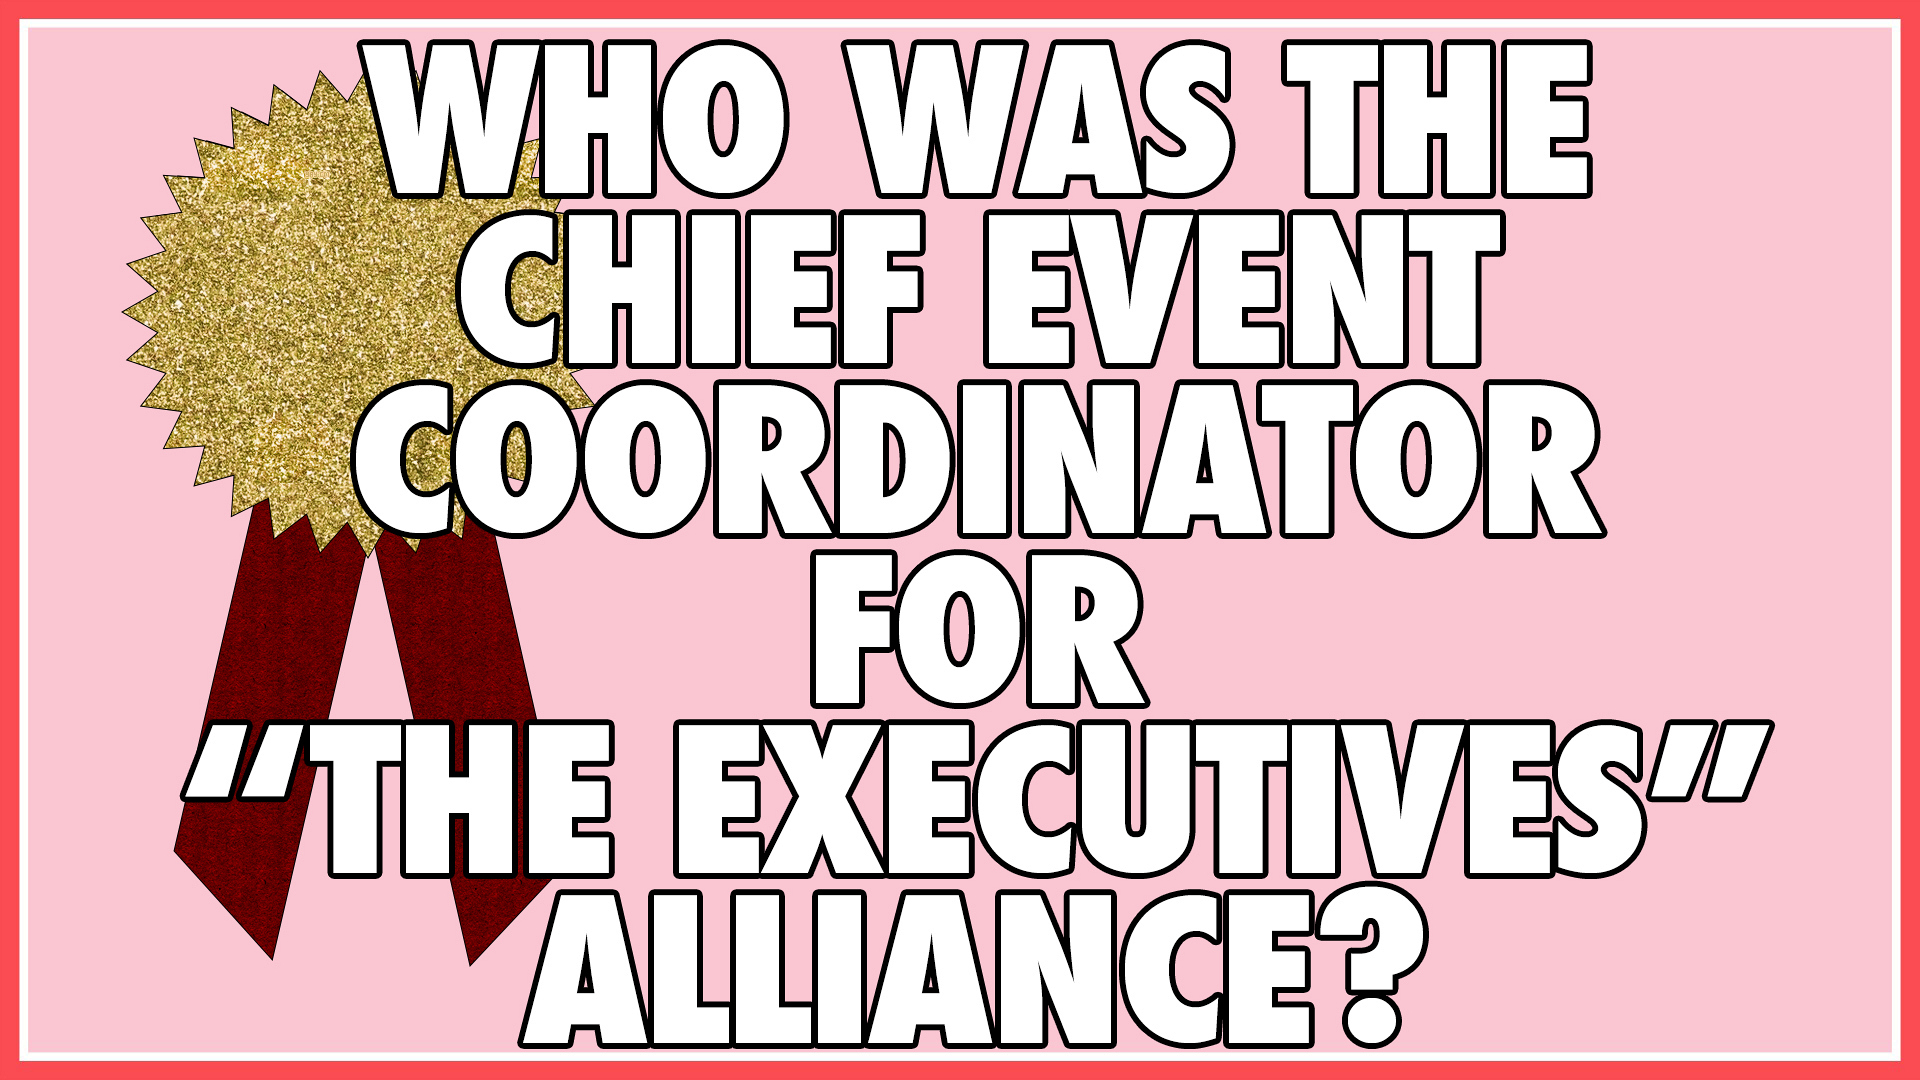 """Who was the Chief Event Coordinator for """"The Executives"""" alliance?"""